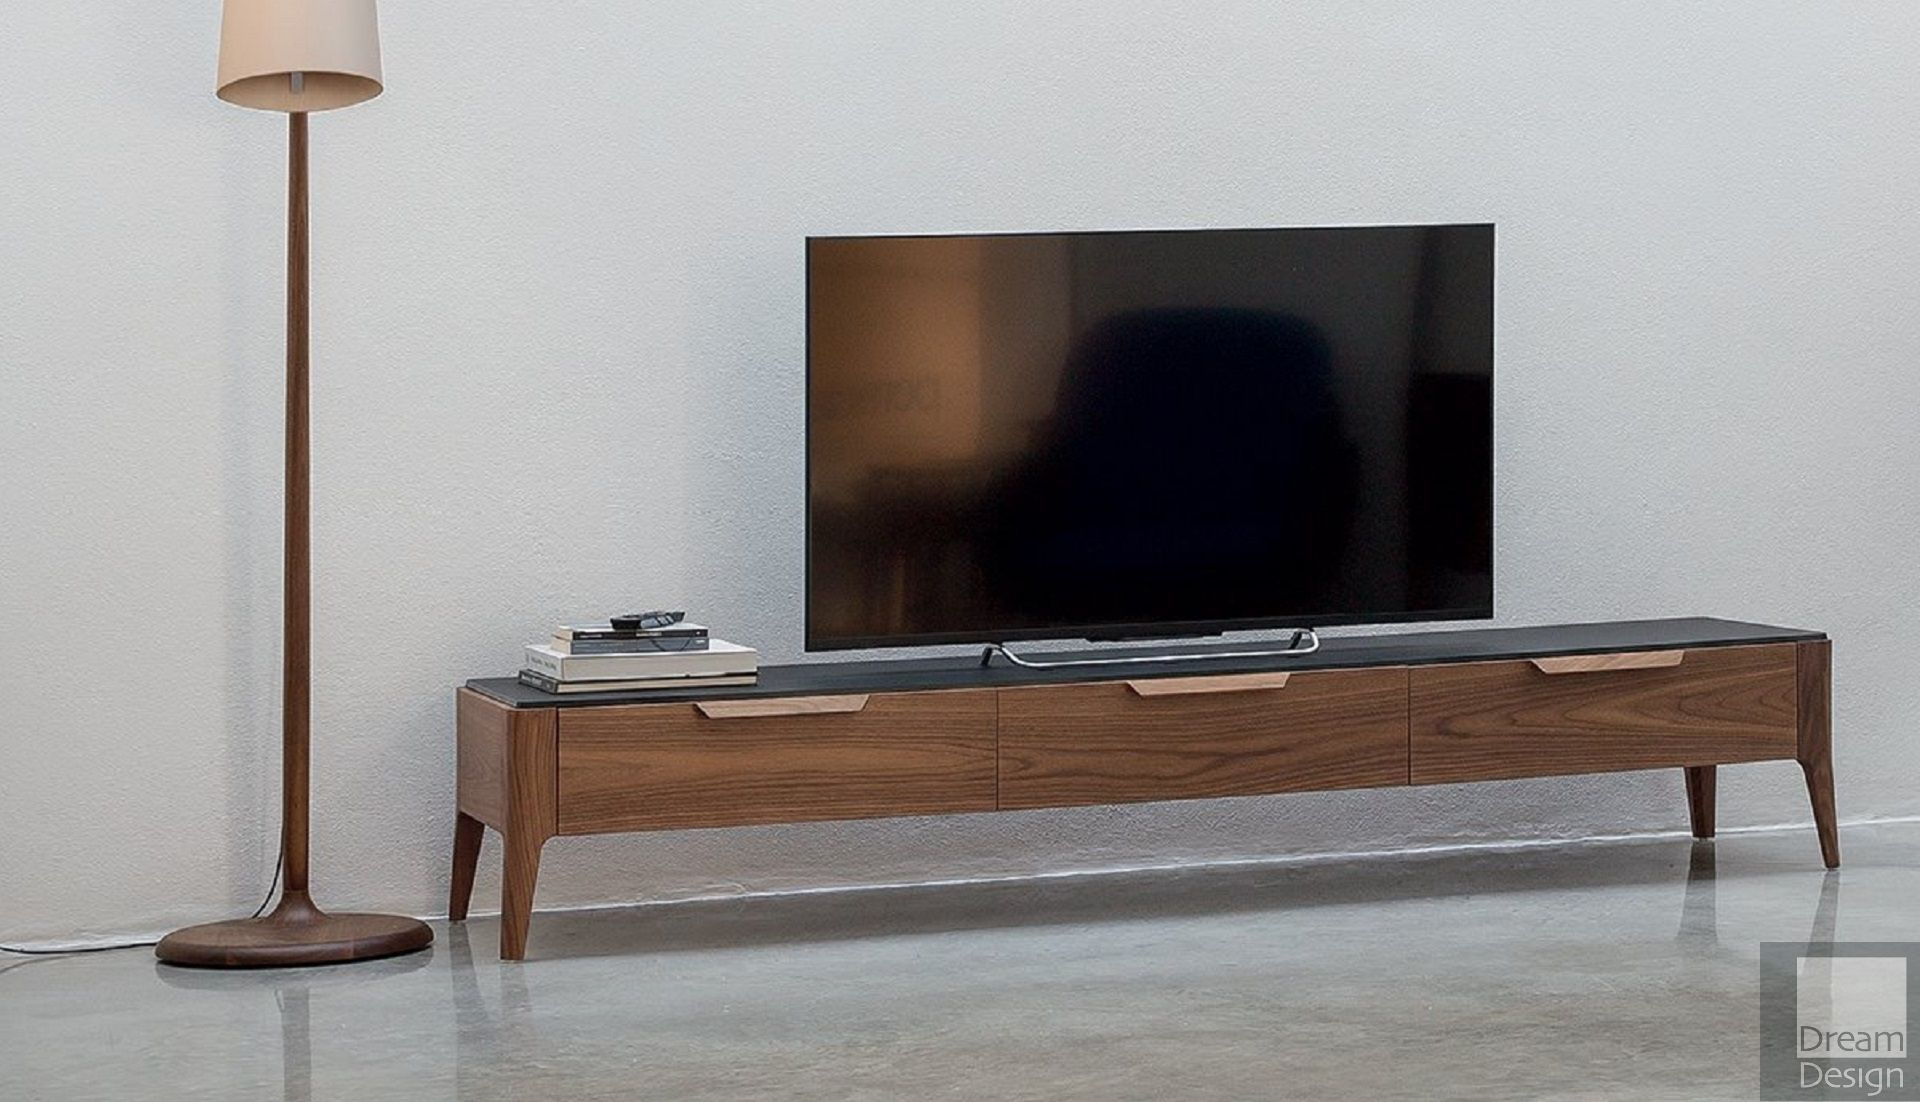 Meuble Tv Wenge But - Porada Atlante Tv Stand By Carlo Ballabio Everything But Ordinary[mjhdah]http://www.beerandrail.com/wp-content/uploads/2018/02/meuble-tv-wenge-but-best-of-meuble-chambre-design-design-cuisine-washington-dc-meuble-chambre-of-meuble-tv-wenge-but.jpg